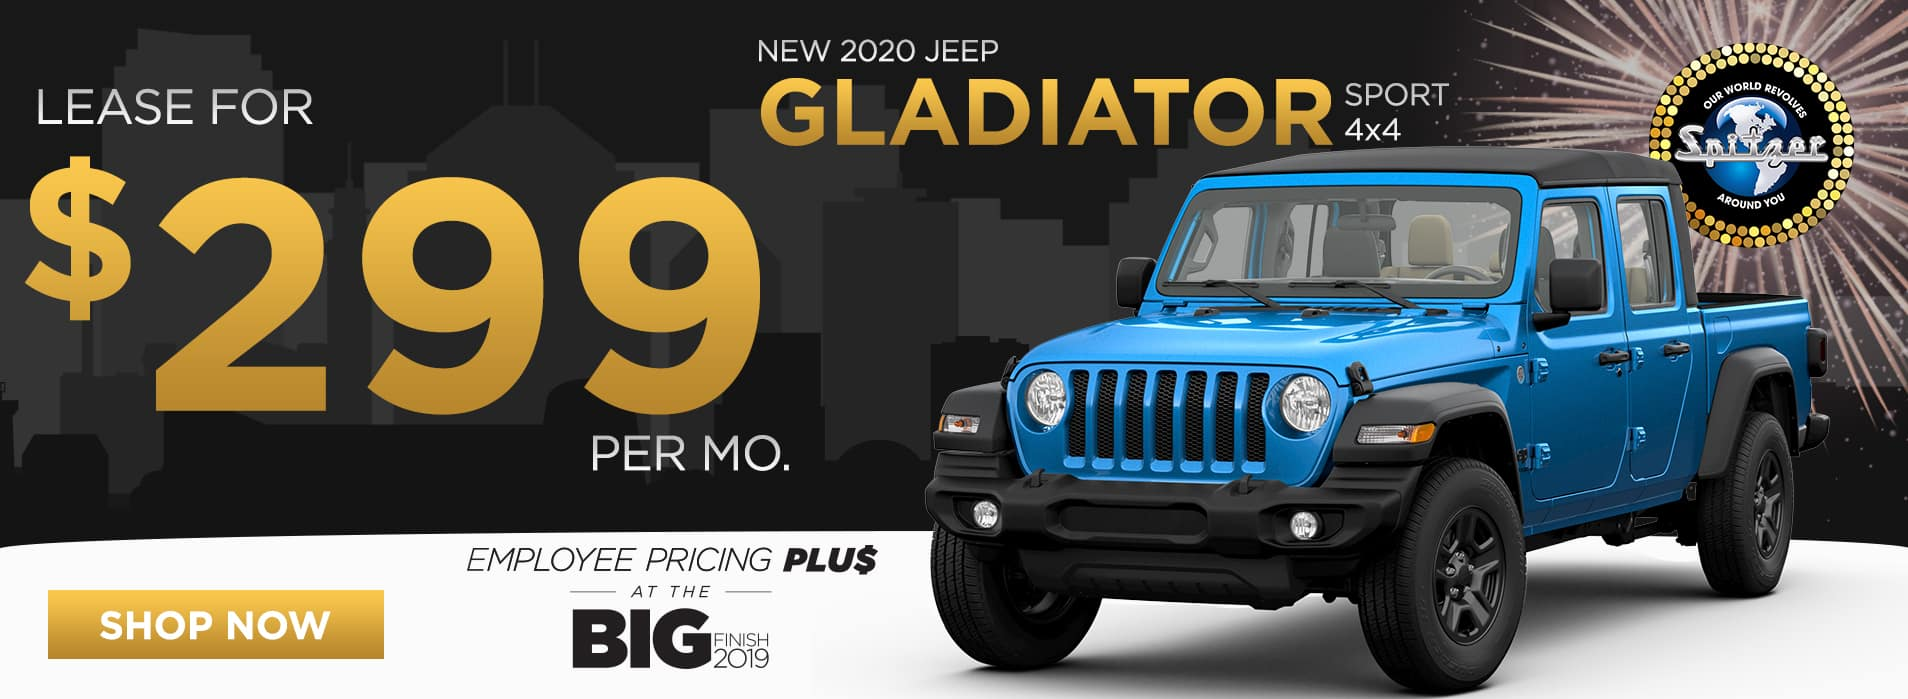 Gladiator   Lease for $299 per mo